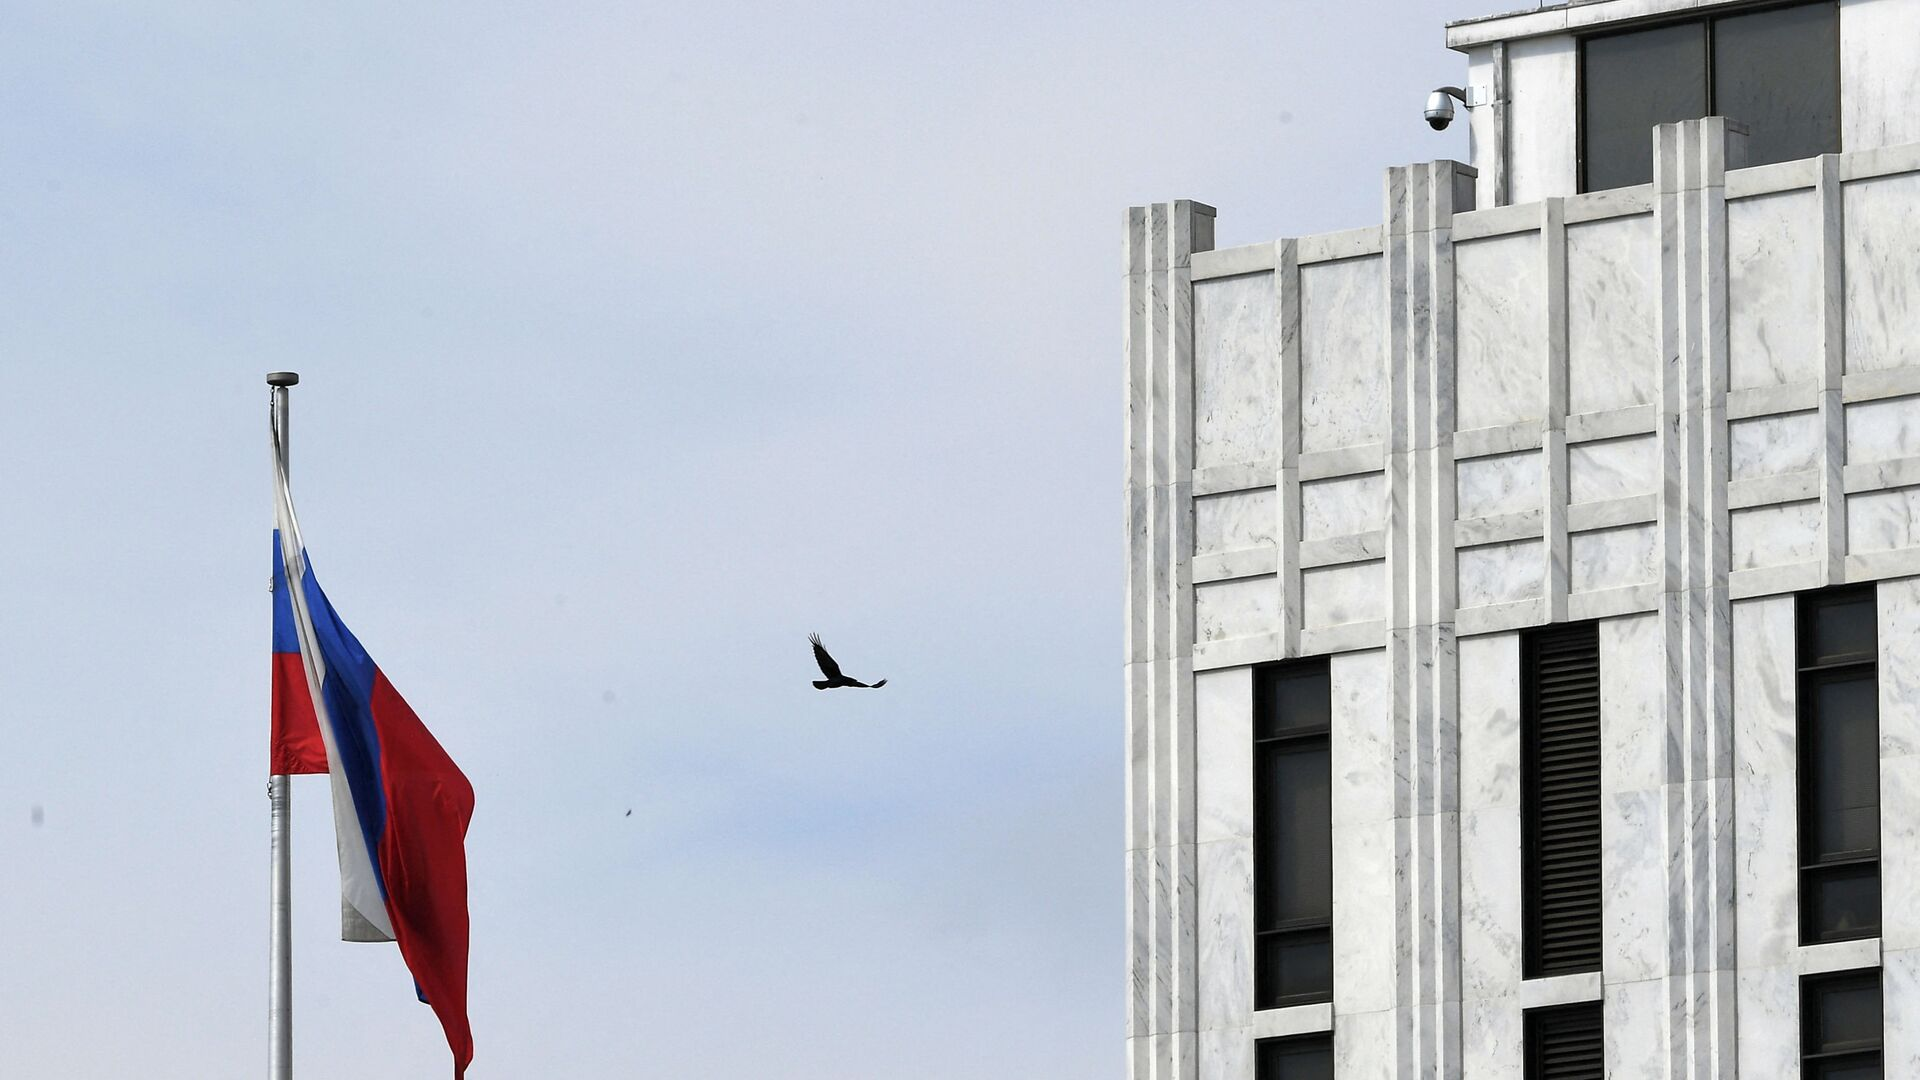 A bird flies past a Russian flag at the Embassy of Russia in Washington, DC on April 15, 2021. - Sputnik International, 1920, 03.08.2021